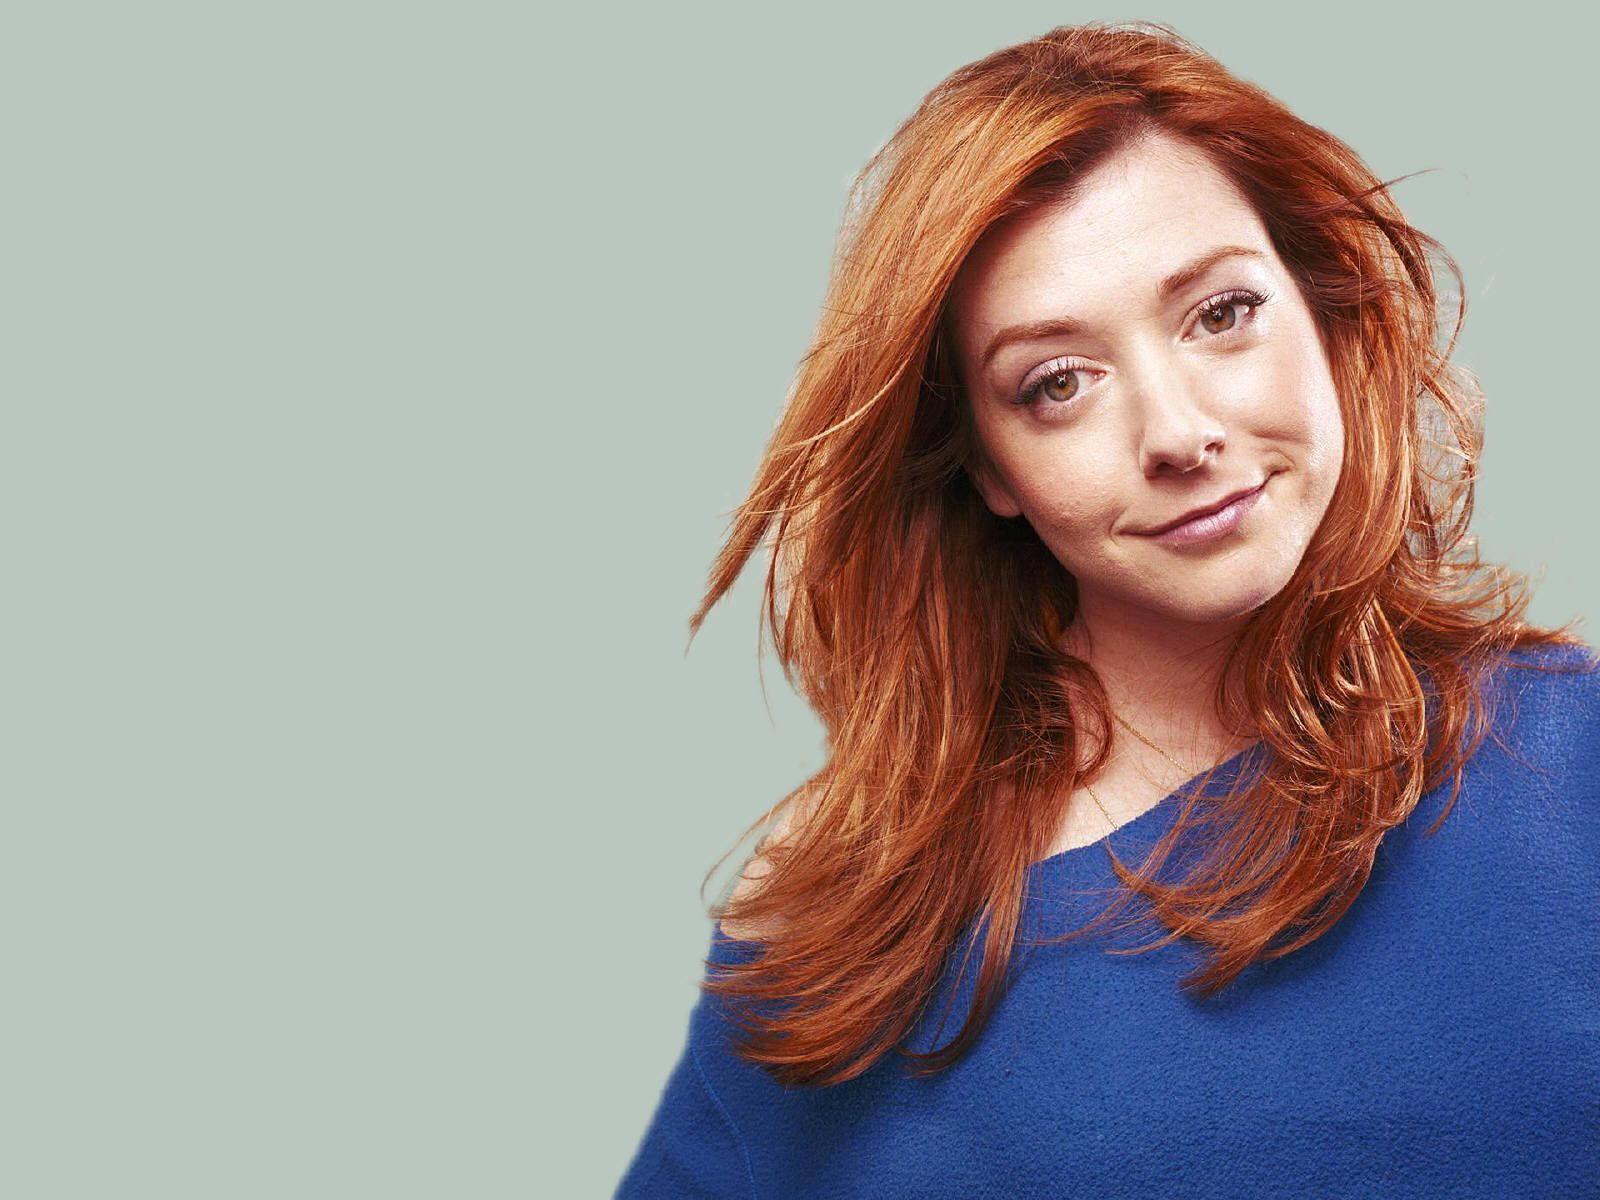 alyson hannigan 2016alyson hannigan 2016, alyson hannigan 2017, alyson hannigan young, alyson hannigan car, alyson hannigan 2015, alyson hannigan interview, alyson hannigan кинопоиск, alyson hannigan википедия, alyson hannigan site, alyson hannigan i, alyson hannigan as willow credit, alyson hannigan singing, alyson hannigan without makeup, alyson hannigan 2014, alyson hannigan cries, alyson hannigan child, alyson hannigan wiki, alyson hannigan insta, alyson hannigan lindsey stirling, alyson hannigan jason segel